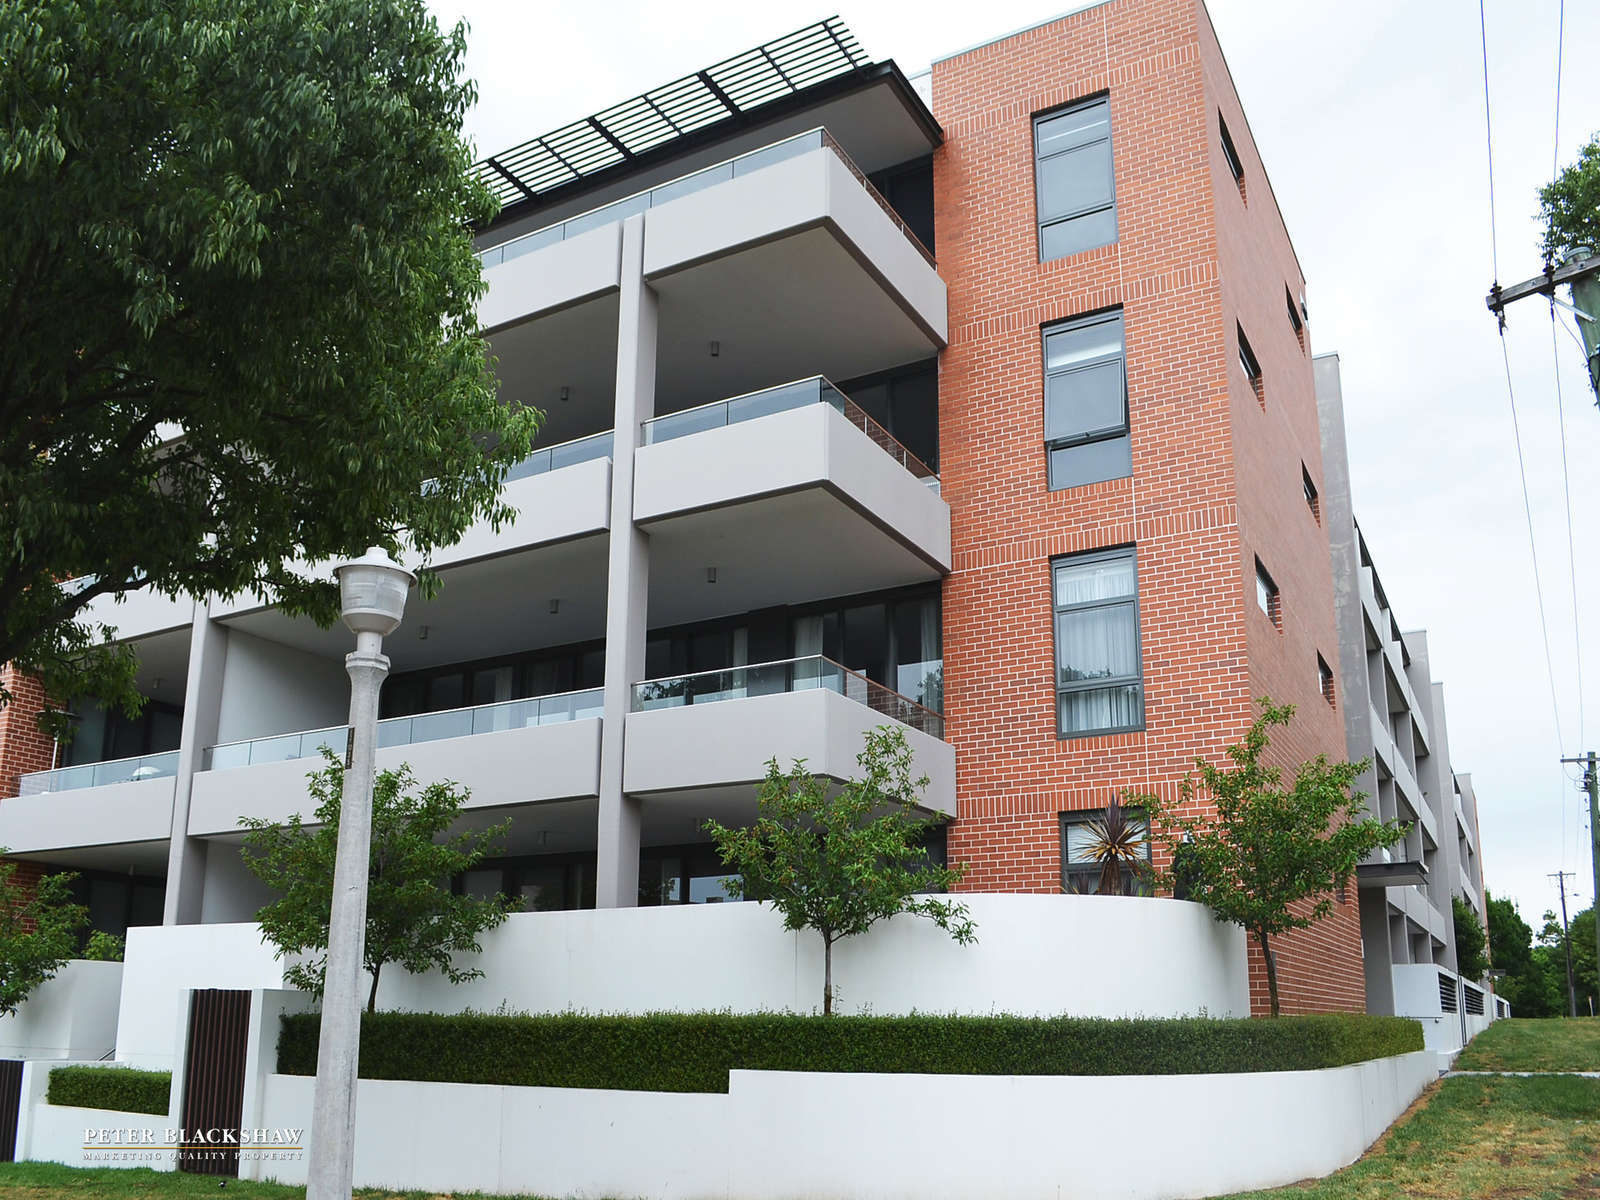 117/22 Eyre Street, Kingston ACT 2604 - Apartment For Rent ...